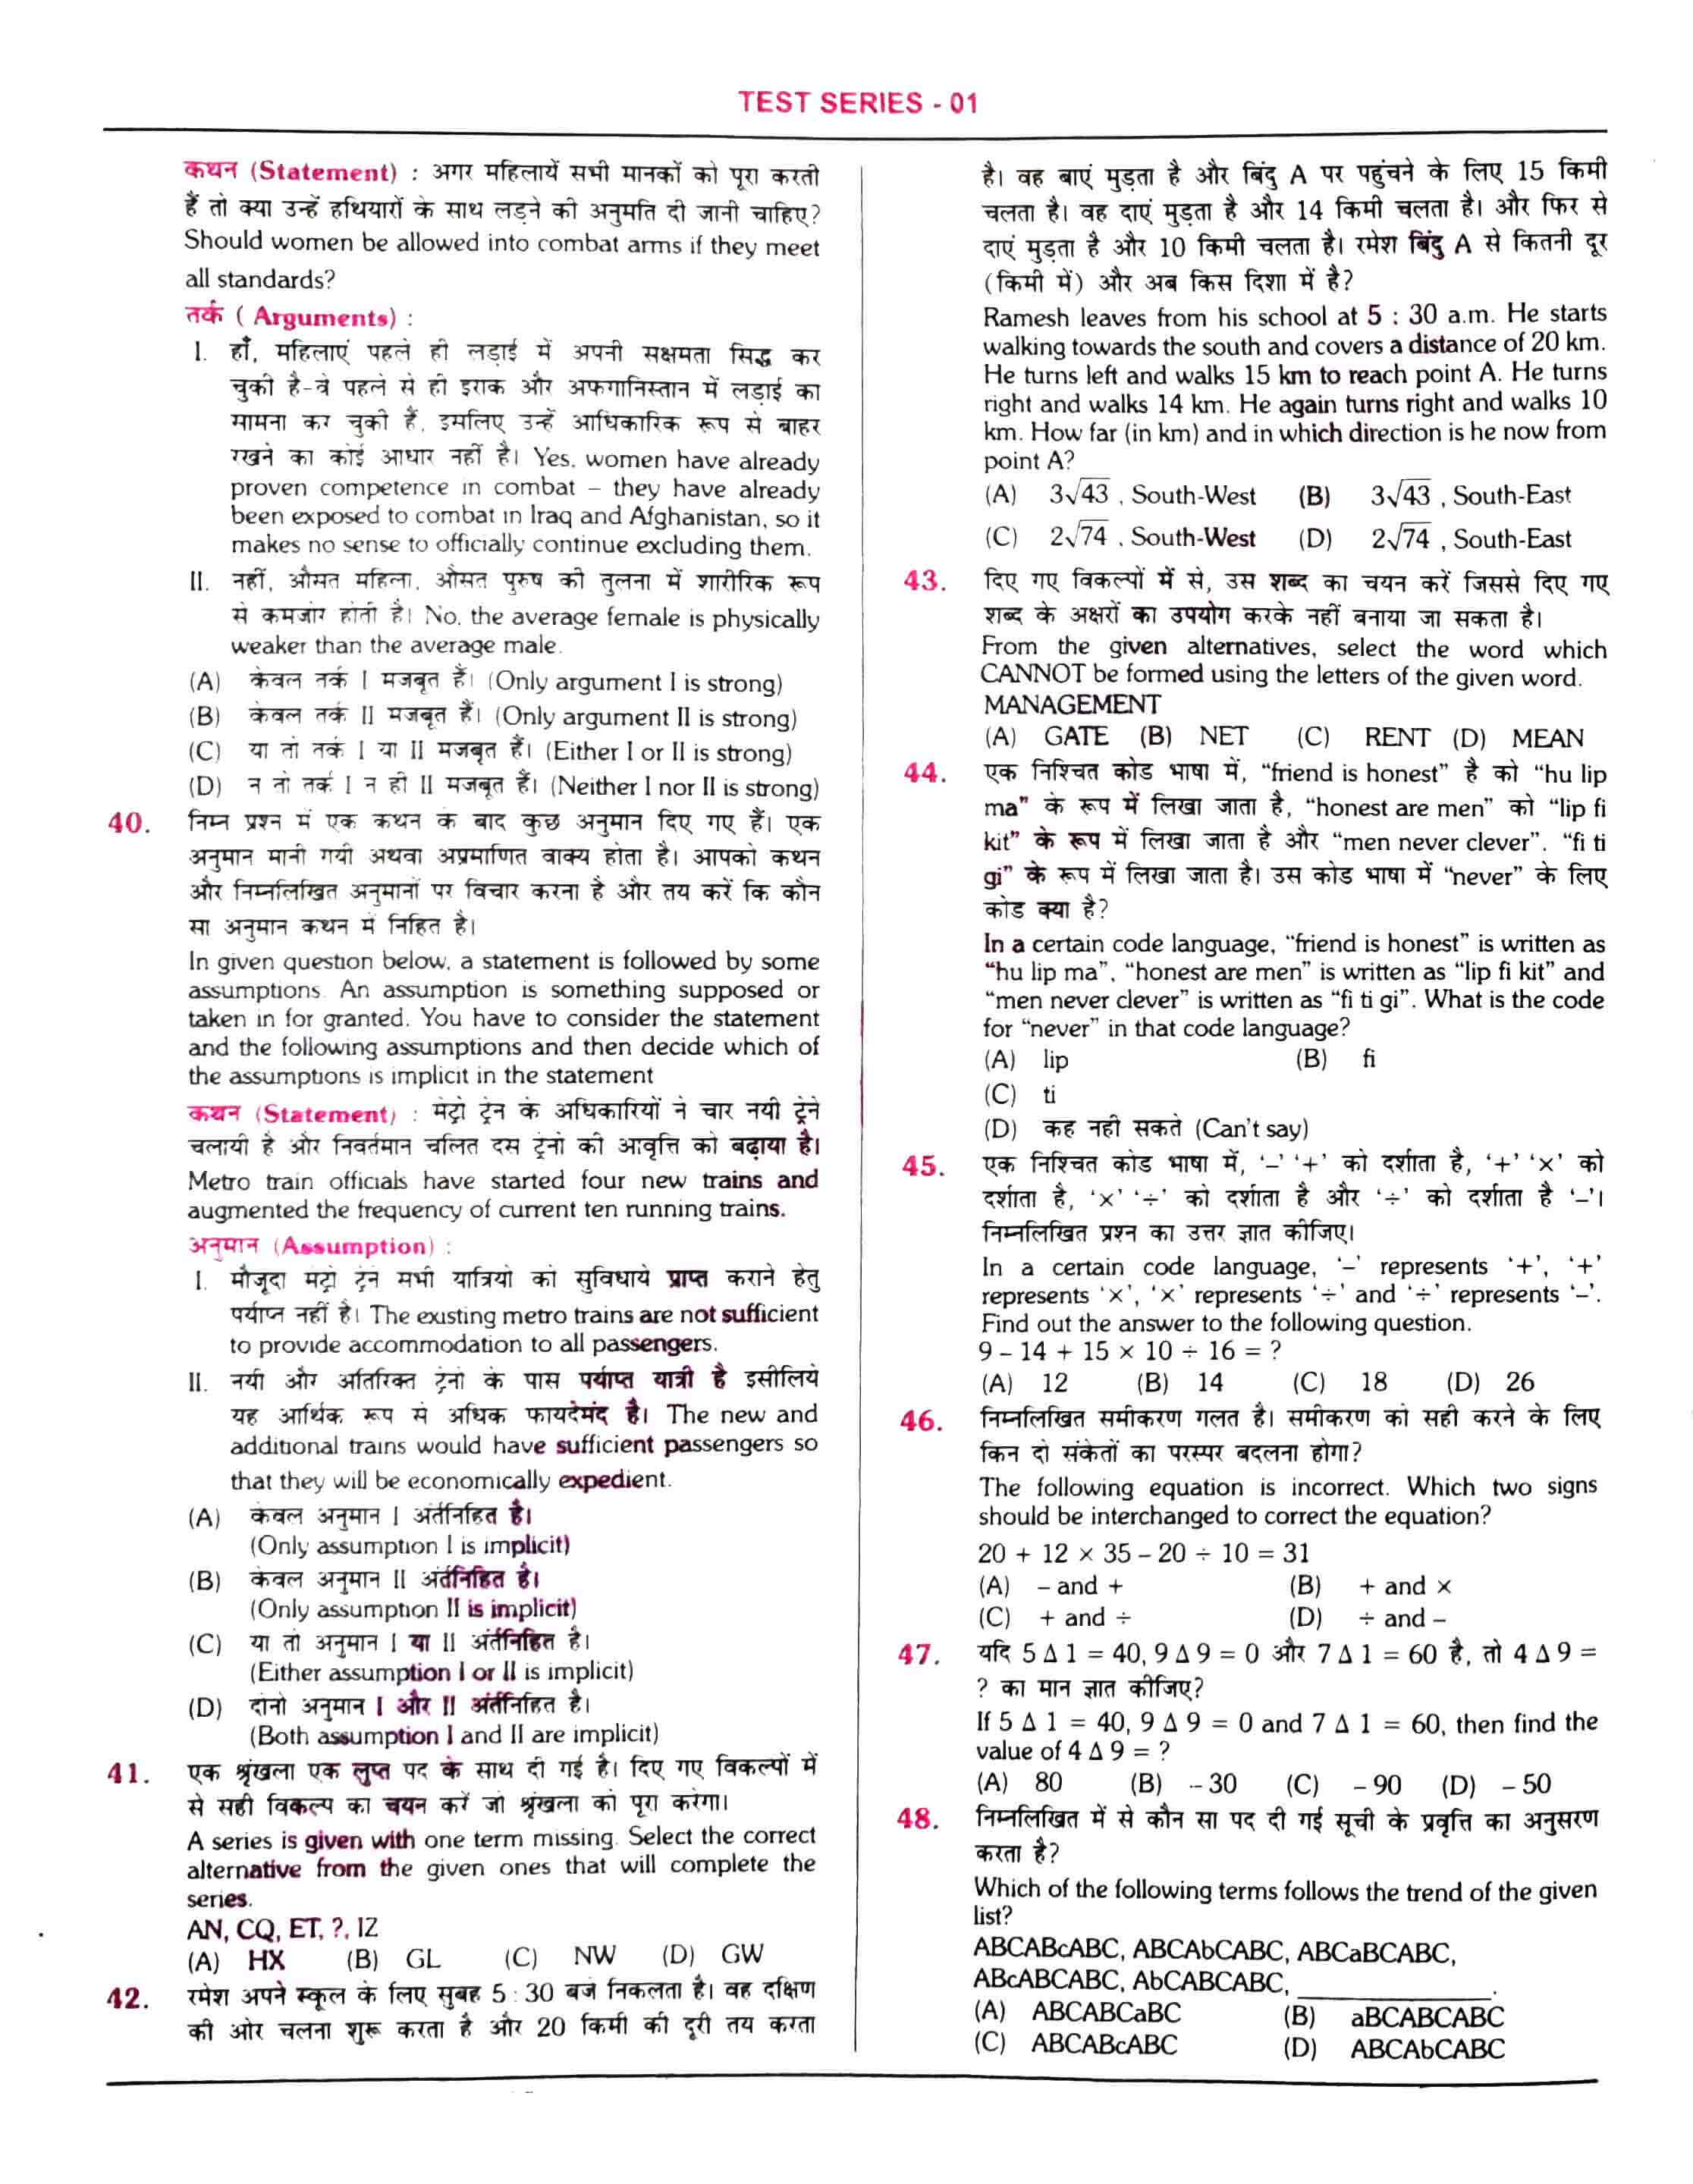 RRB NTPC Question Paper 2021 page 4